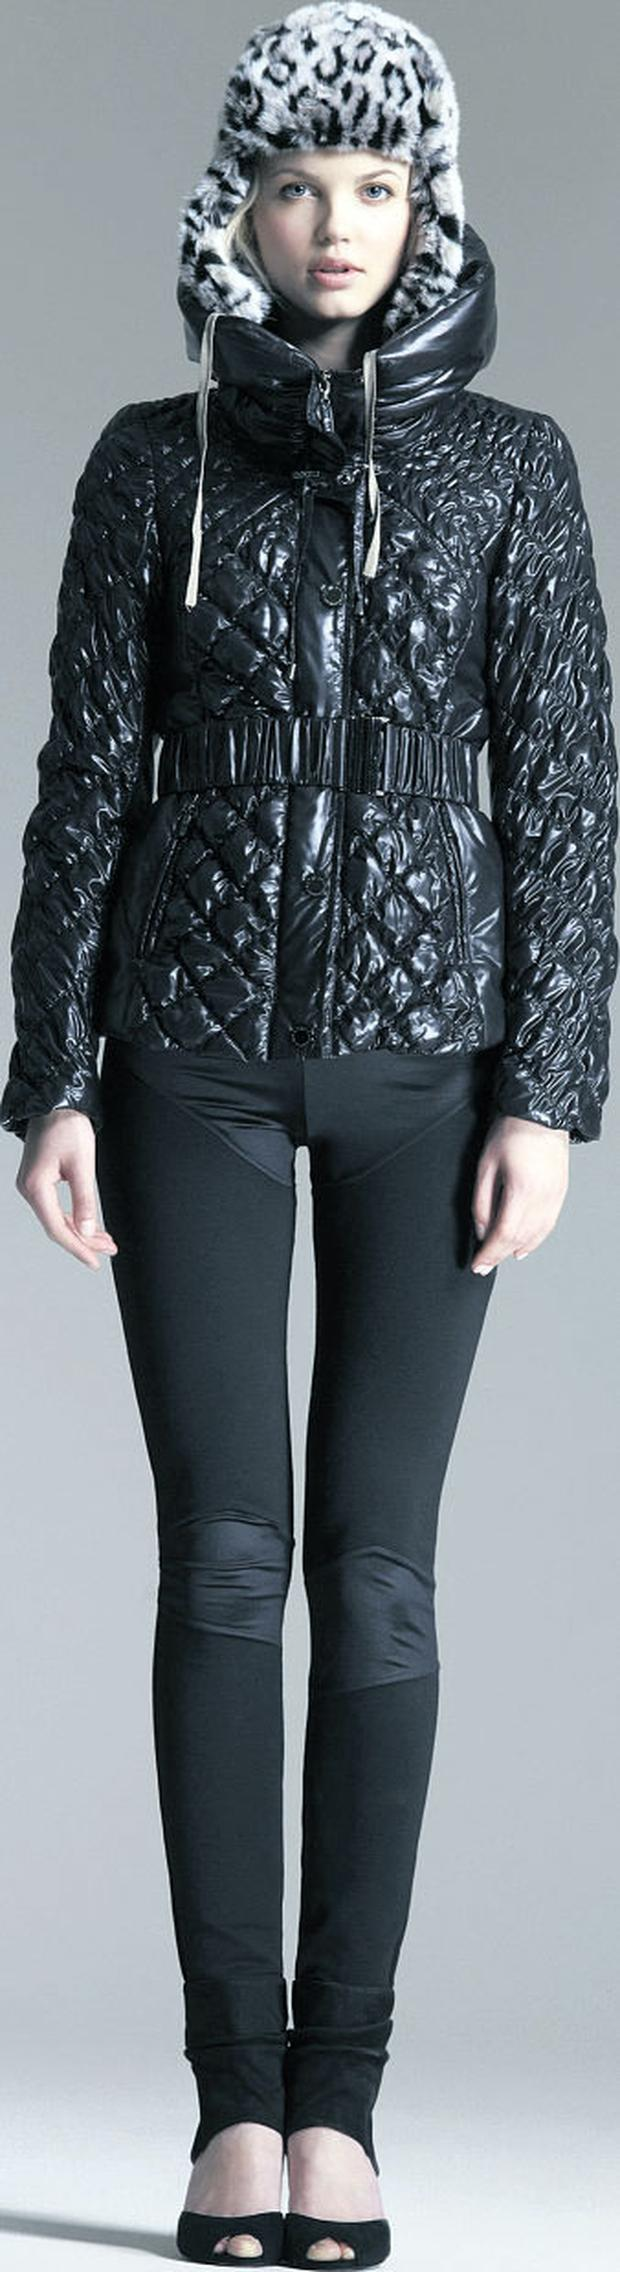 Quilted puffa, €101; leggings, €34, and snowleopard trapper hat, €31, all Star by Julien Macdonald at Debenhams.